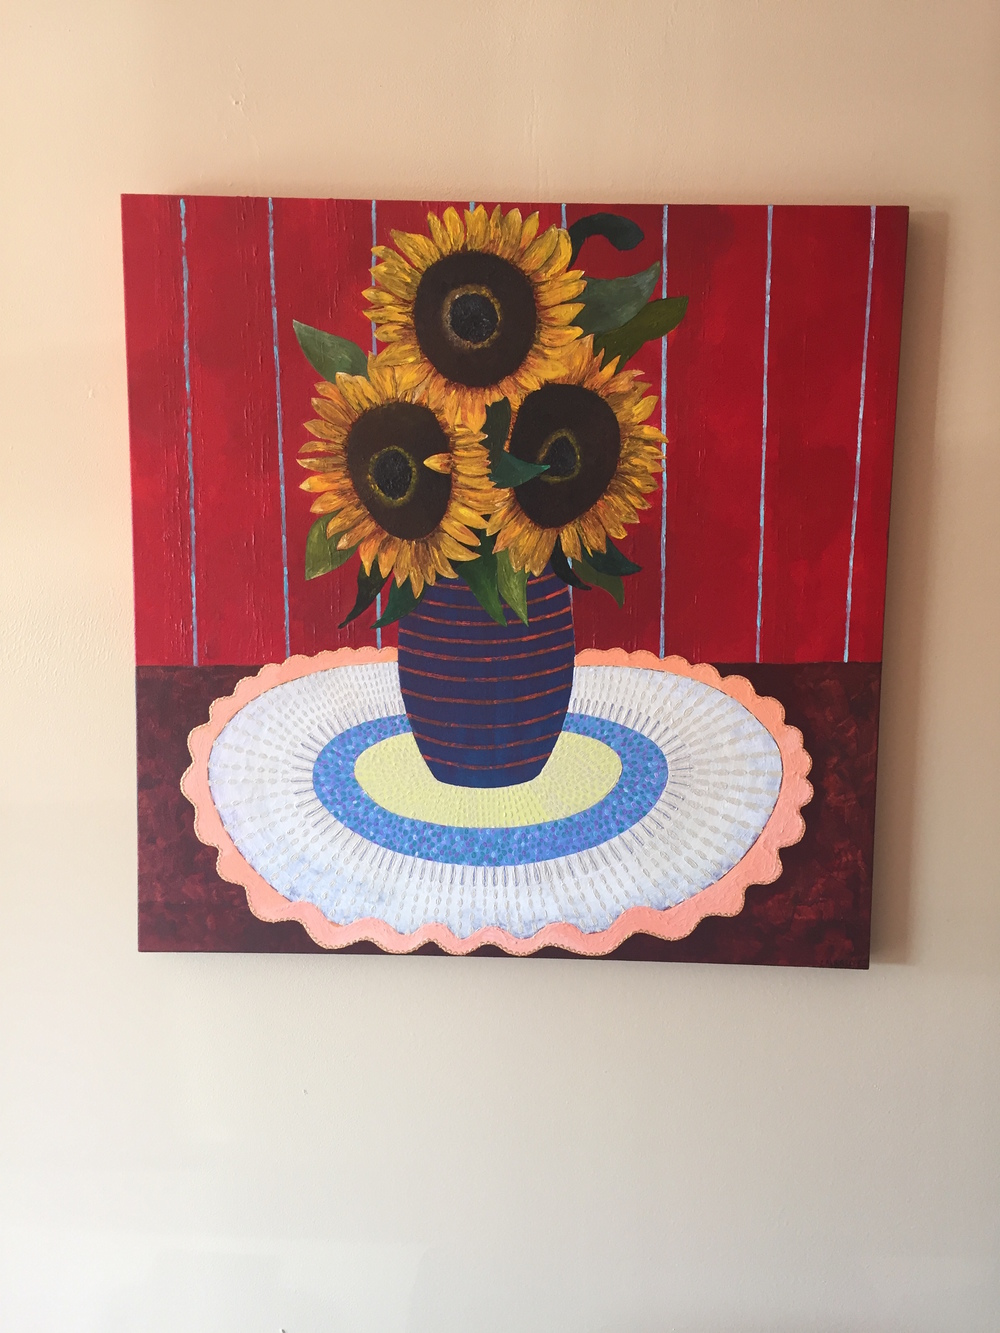 Sunflowers, L.Lopez